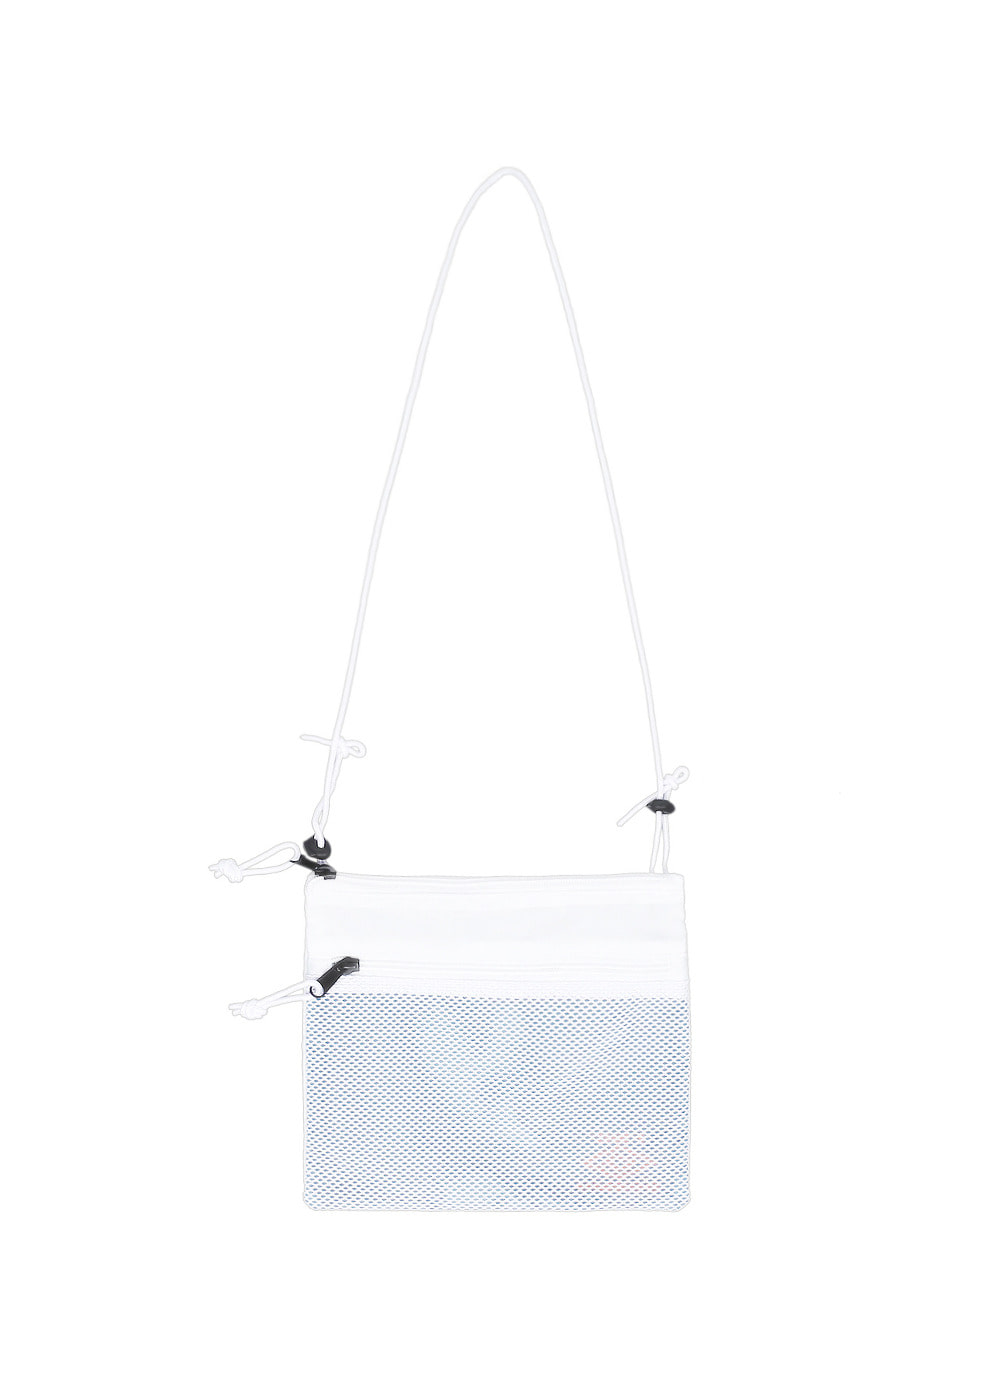 UMB X LMC SACOCHE BAG white